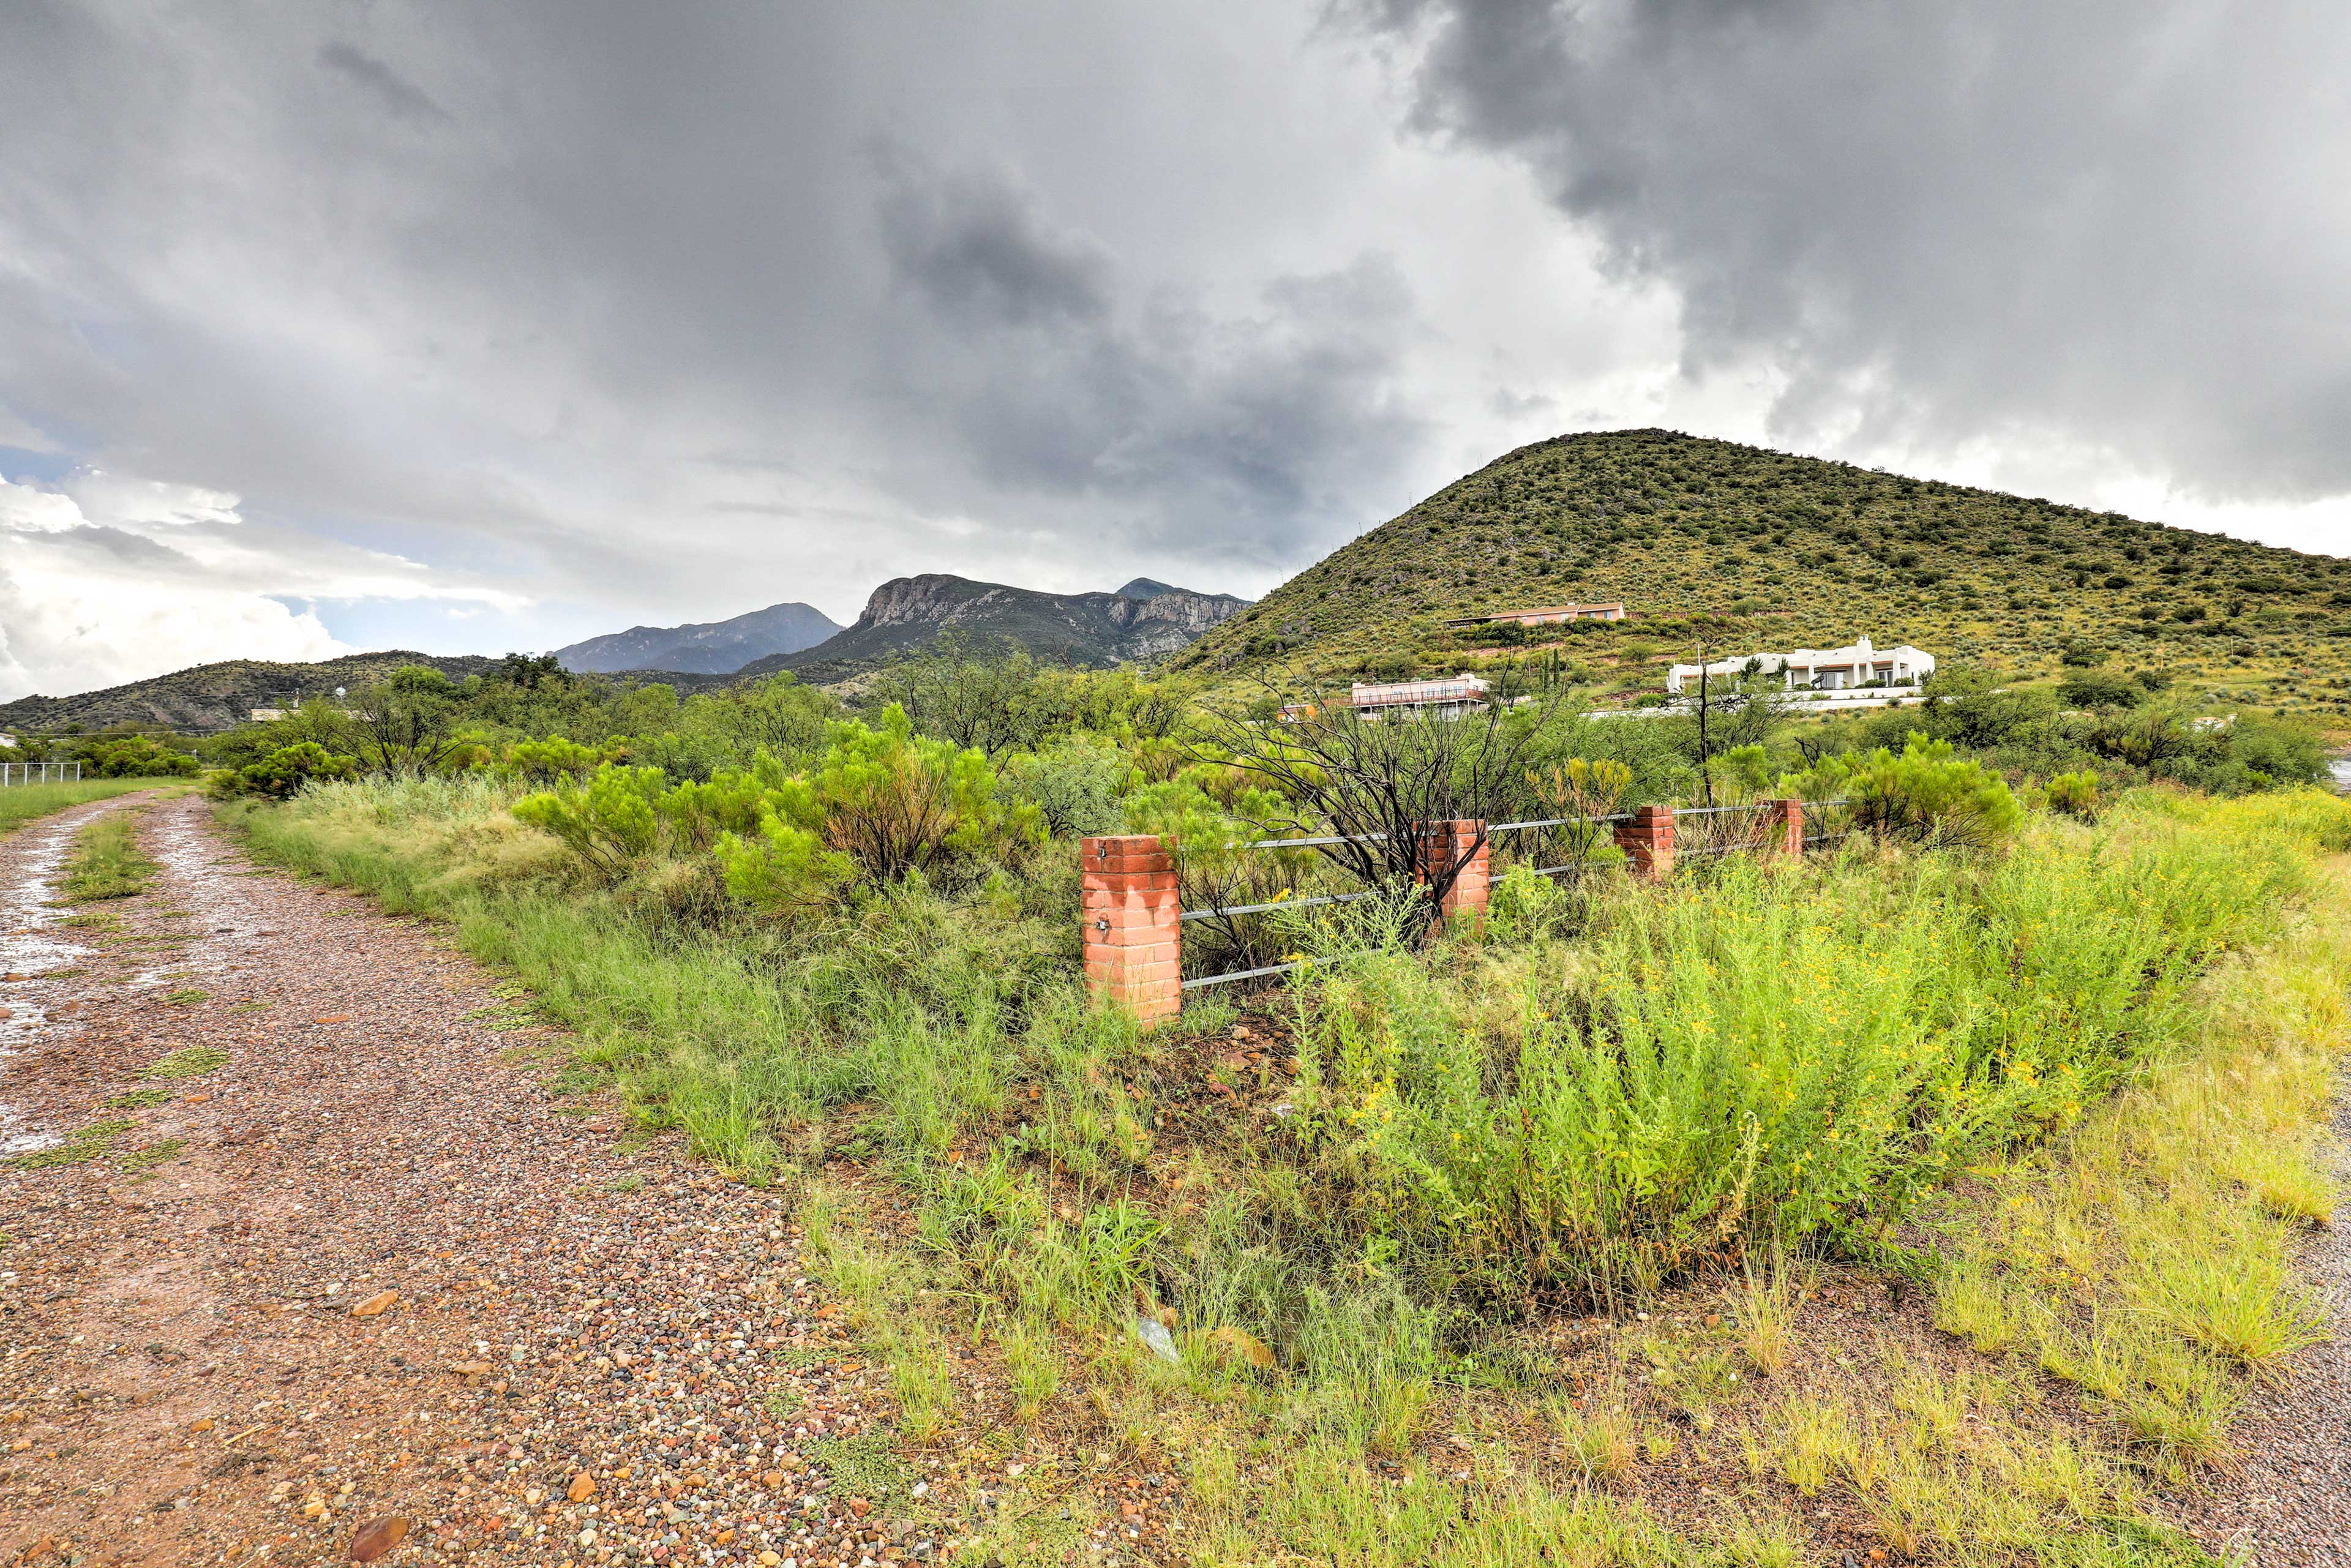 This rental home is located 7 miles from Fort Huachuca Army Base.